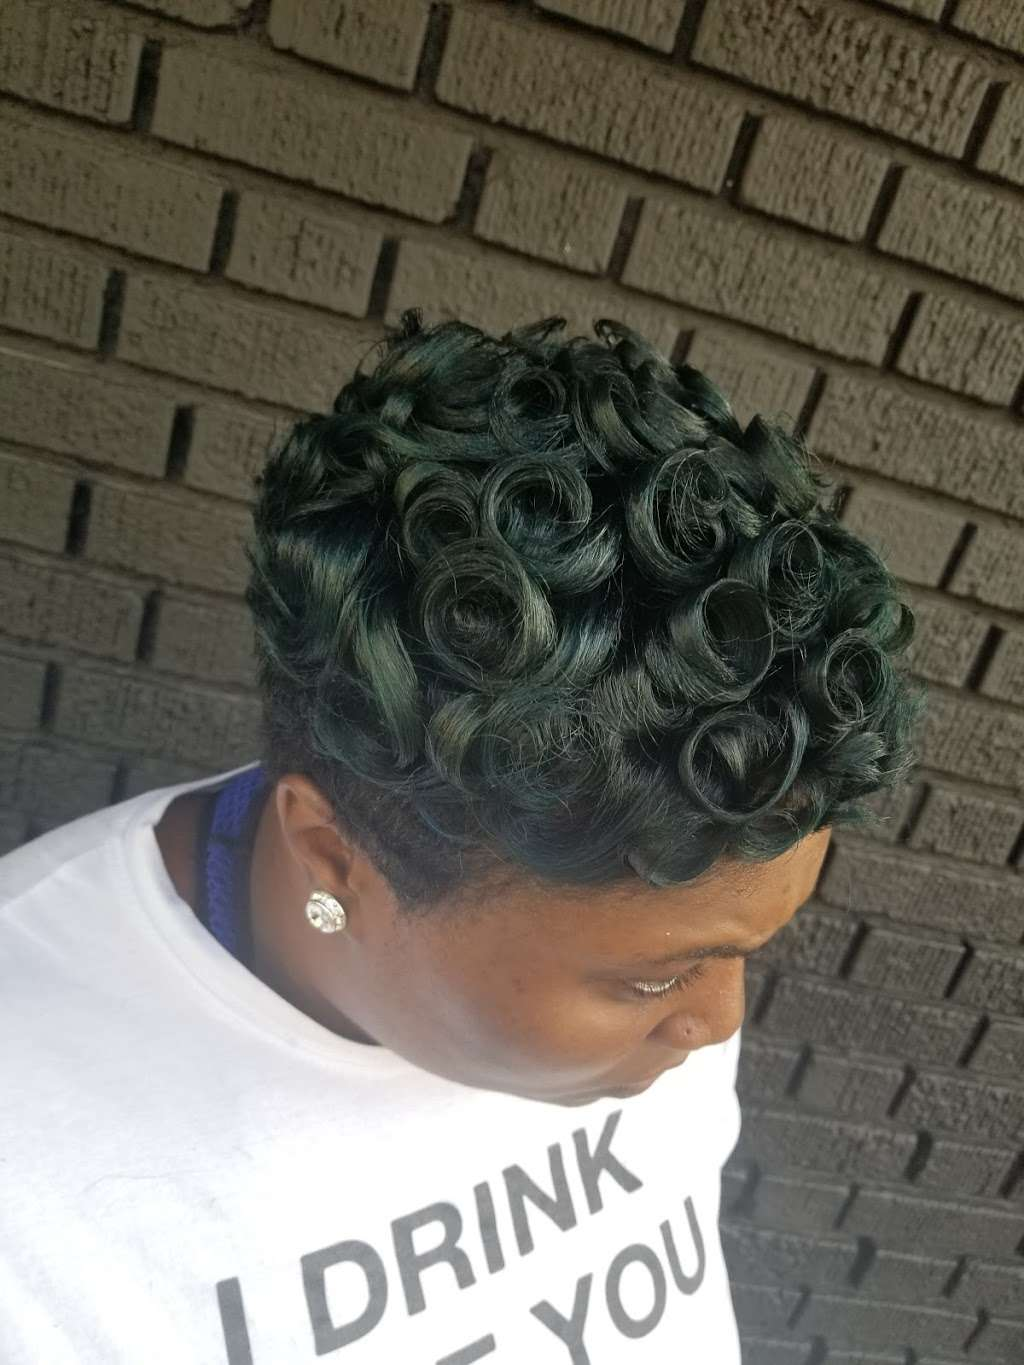 loveable stylez studio - hair care  | Photo 5 of 6 | Address: 2512 Foster Ave, Brooklyn, NY 11210, USA | Phone: (718) 313-5370